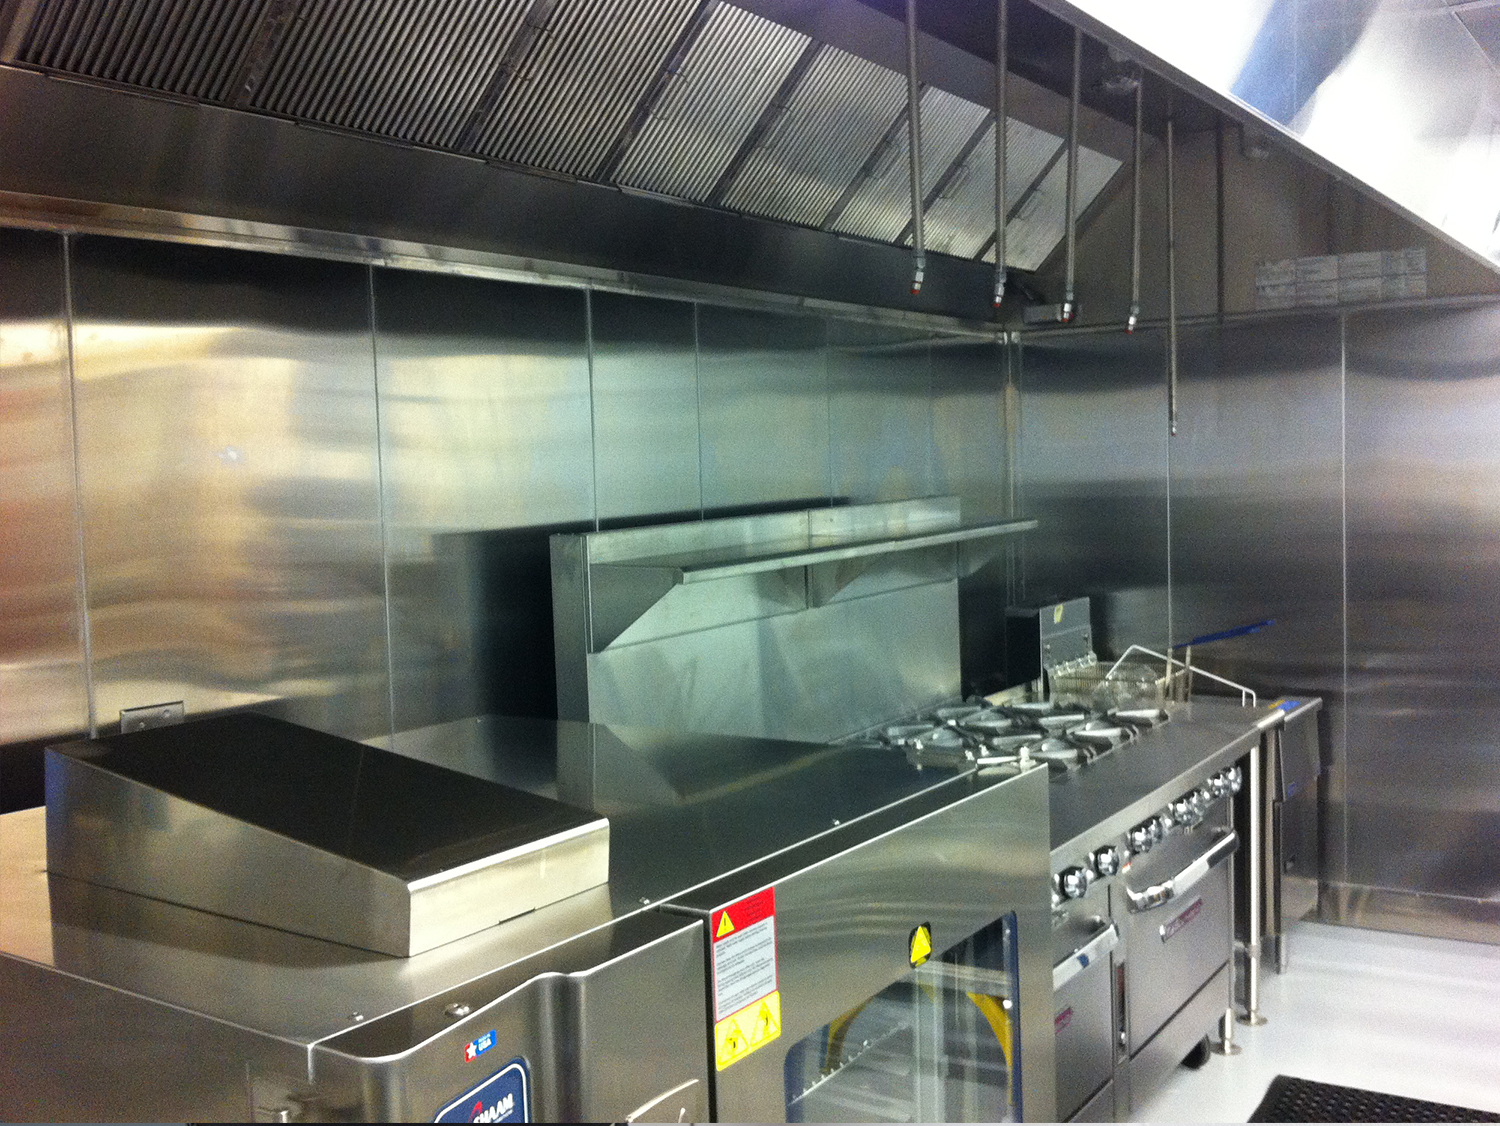 residential kitchen hood fire suppression system fans  wow blog